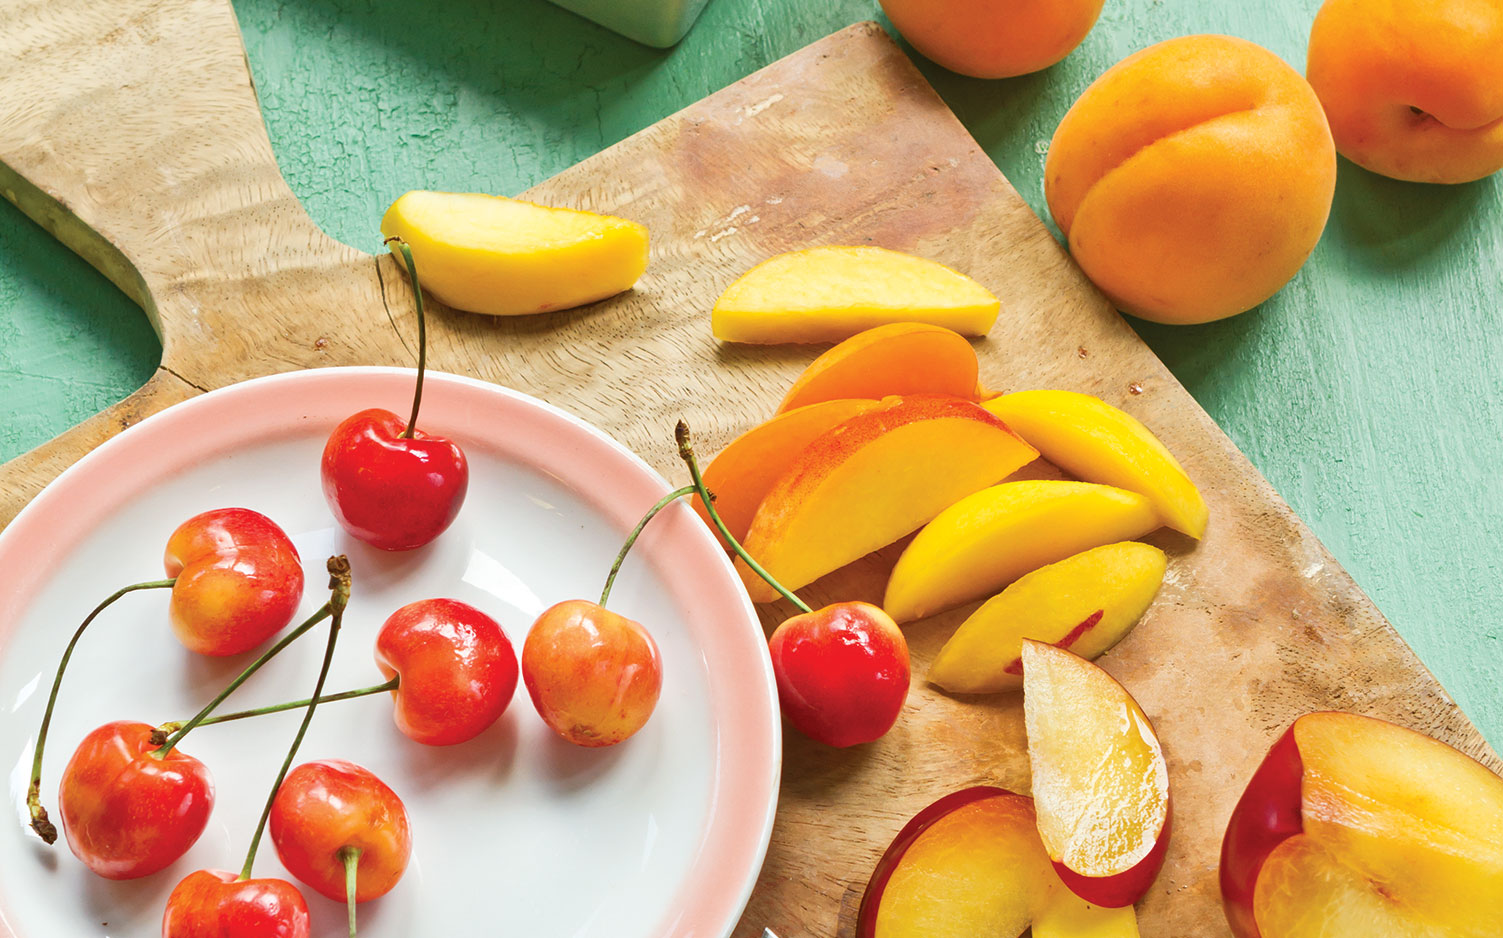 Stone Fruits, peaches and cherries